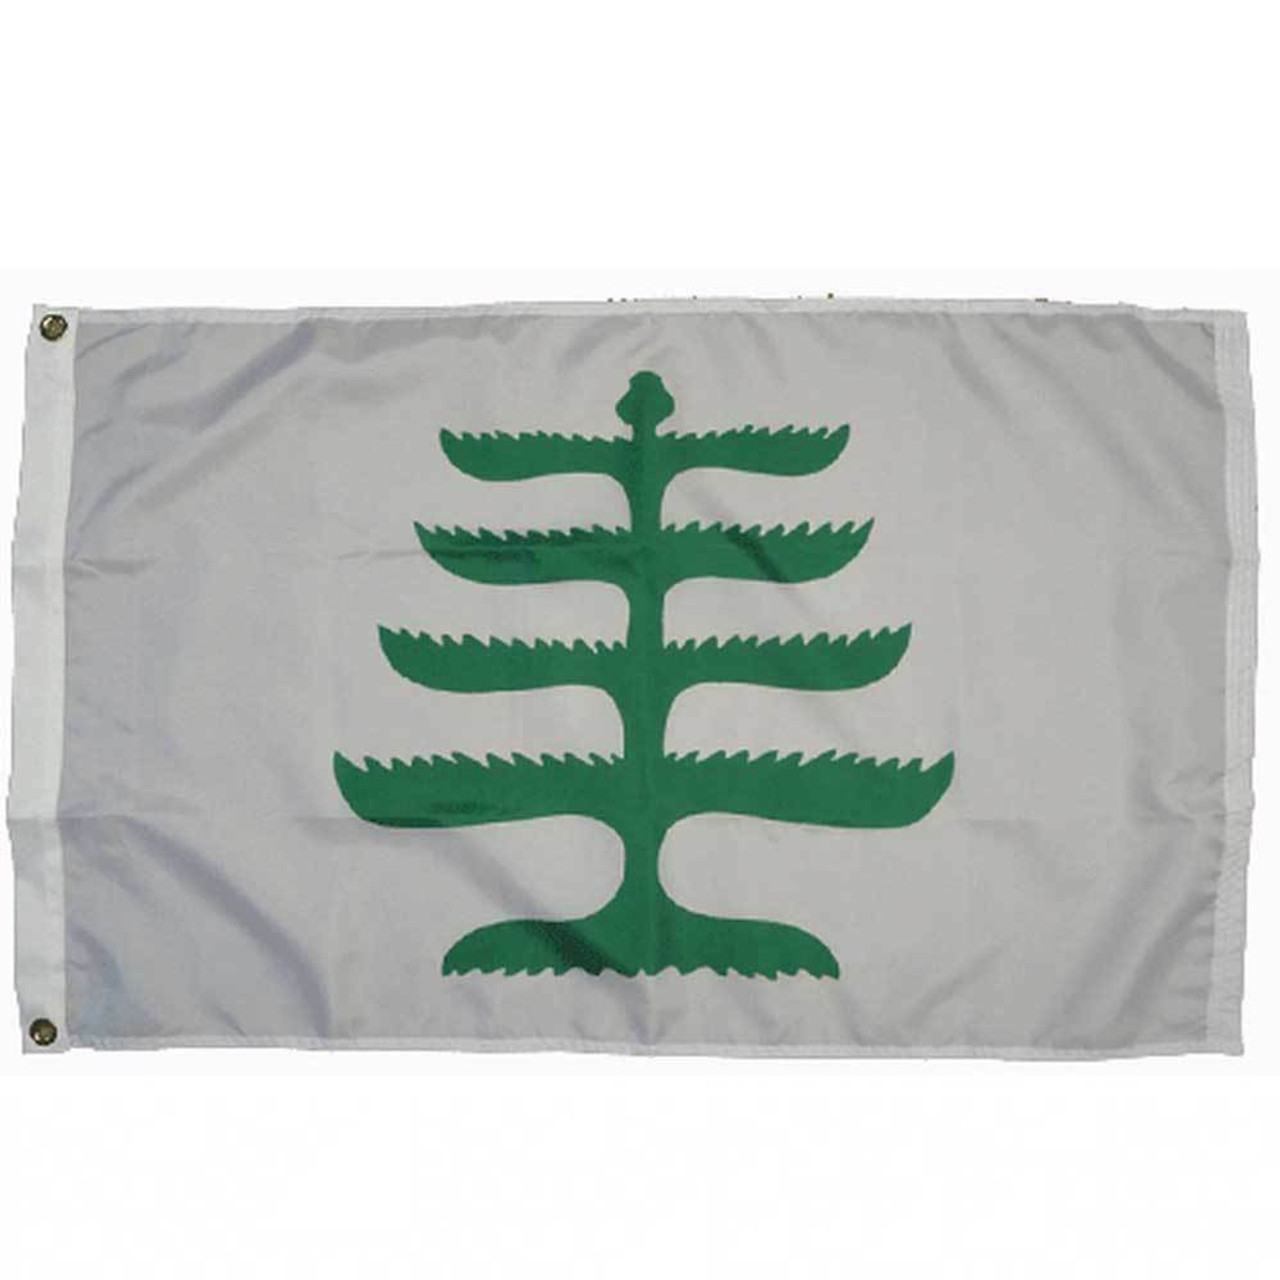 The New England Pine Tree flag consists of a white background with a stylized New England white pine in green centered. On the flag's left side is a sturdy canvas header with brass grommets for easy and secure attachment to flagpoles.